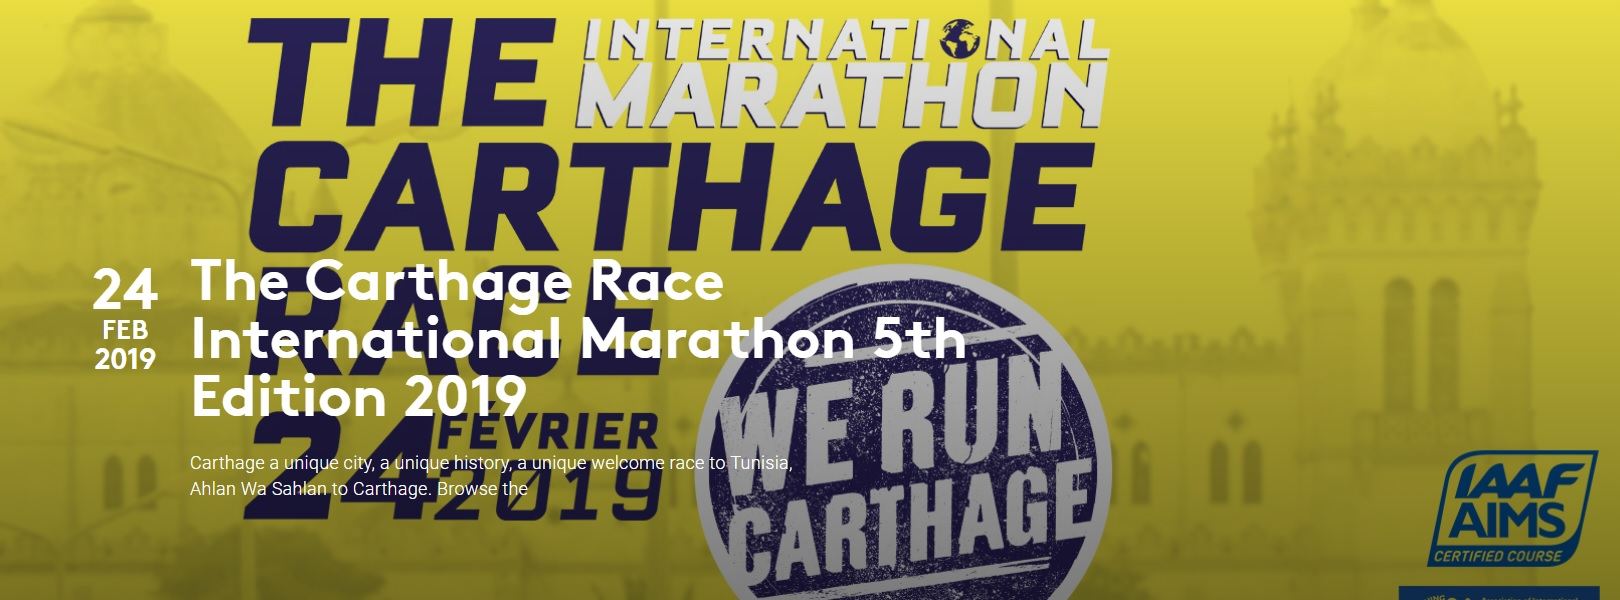 The Carthage Race International Marathon 5th Edition 2019 - Race Connections